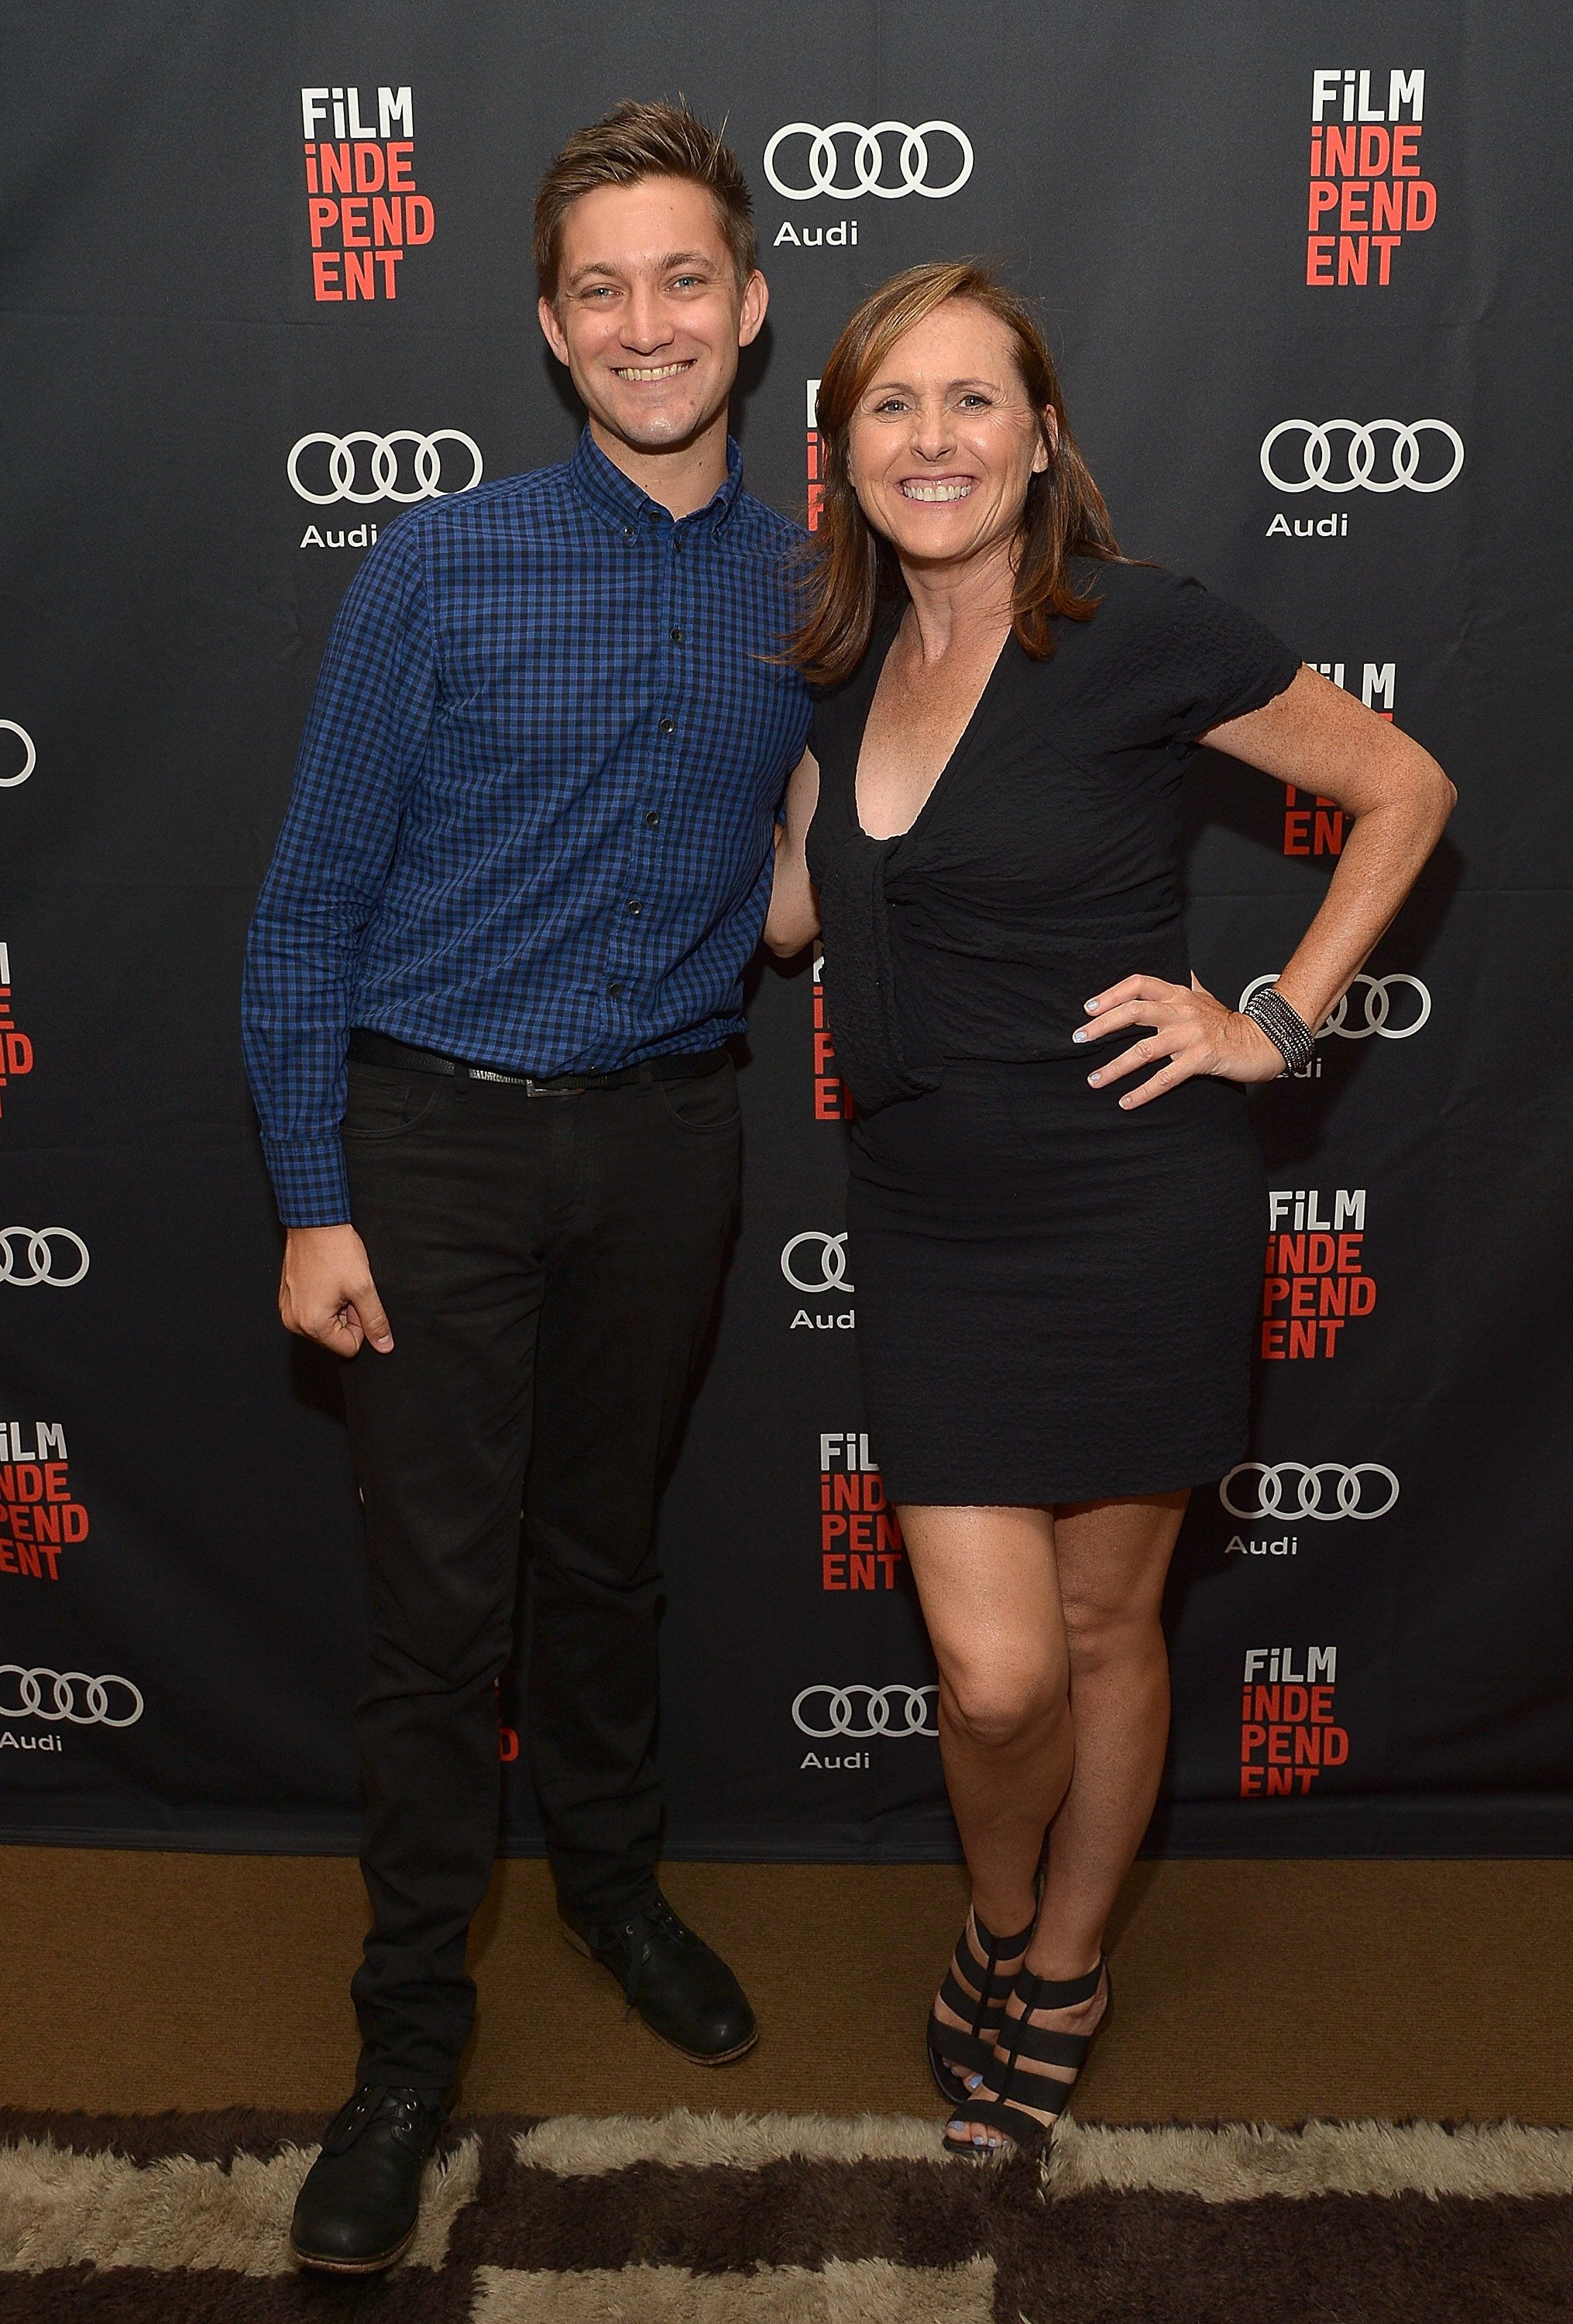 HOLLYWOOD, CA - JULY 28:  Writer-director Chris Kelly and actress Molly Shannon attend an exclusive screening of 'Other People' presented by Audi and Film Independen at NeueHouse Los Angeles on July 28, 2016 in Hollywood, California.  (Photo by Charley Gallay/Getty Images for Audi of America)